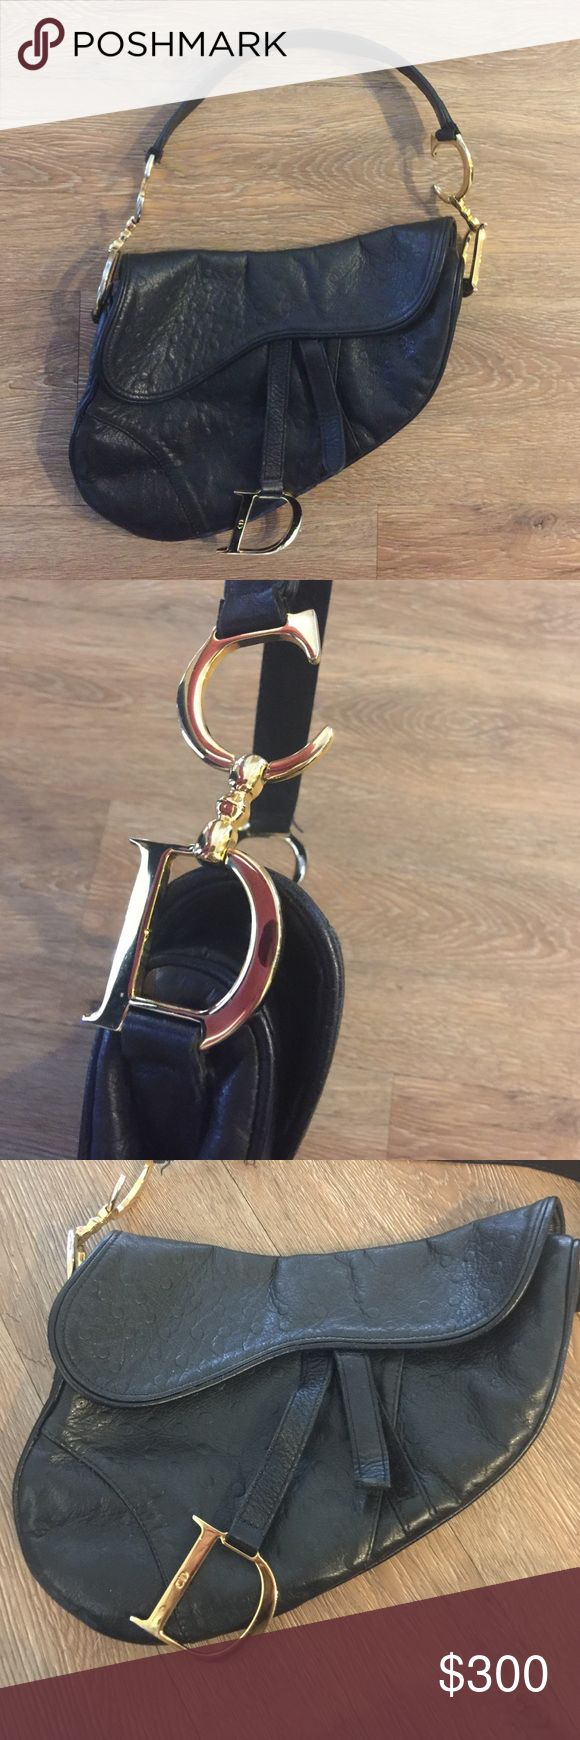 Christian Dior Saddle Authentic Christian Dior leather evening bag with gold hardware.In good condition. Logo on the inside visible but wearing off. No scratches. Christian Dior Bags Shoulder Bags